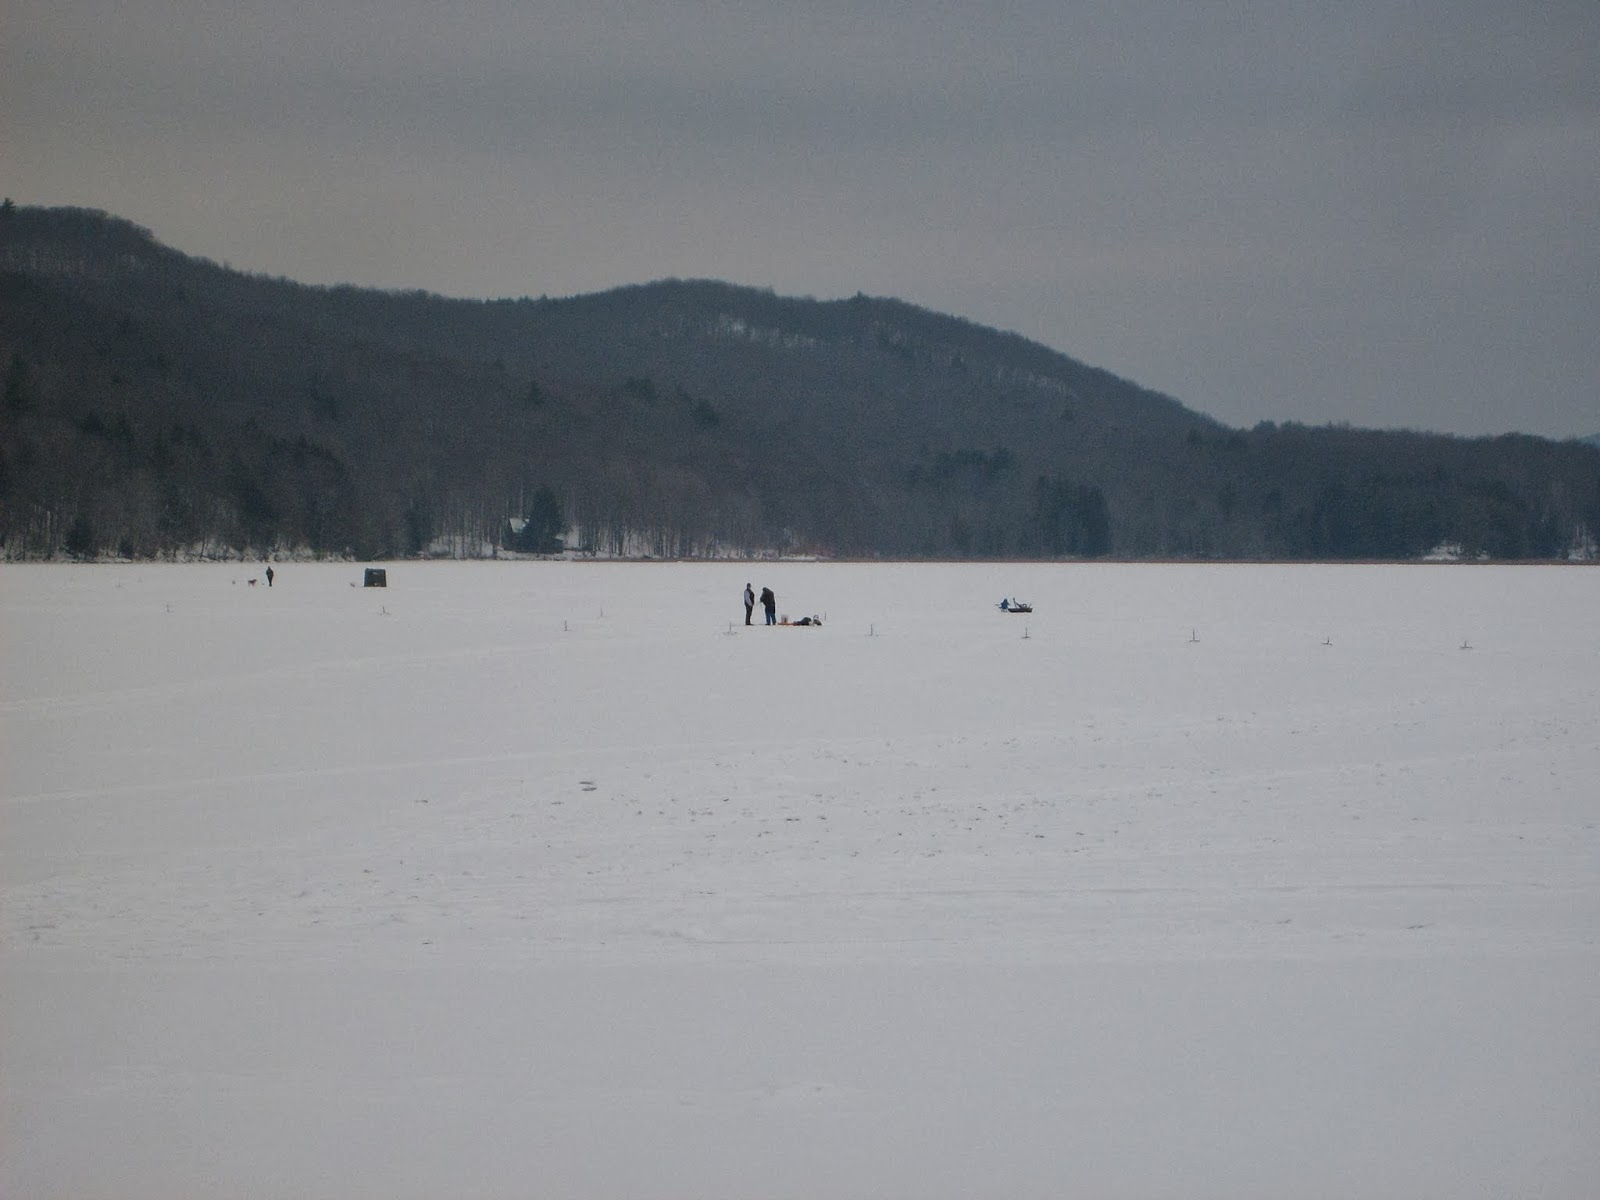 Guided Vermont Ice Fishing Trips Vermont Ice Fishing Has